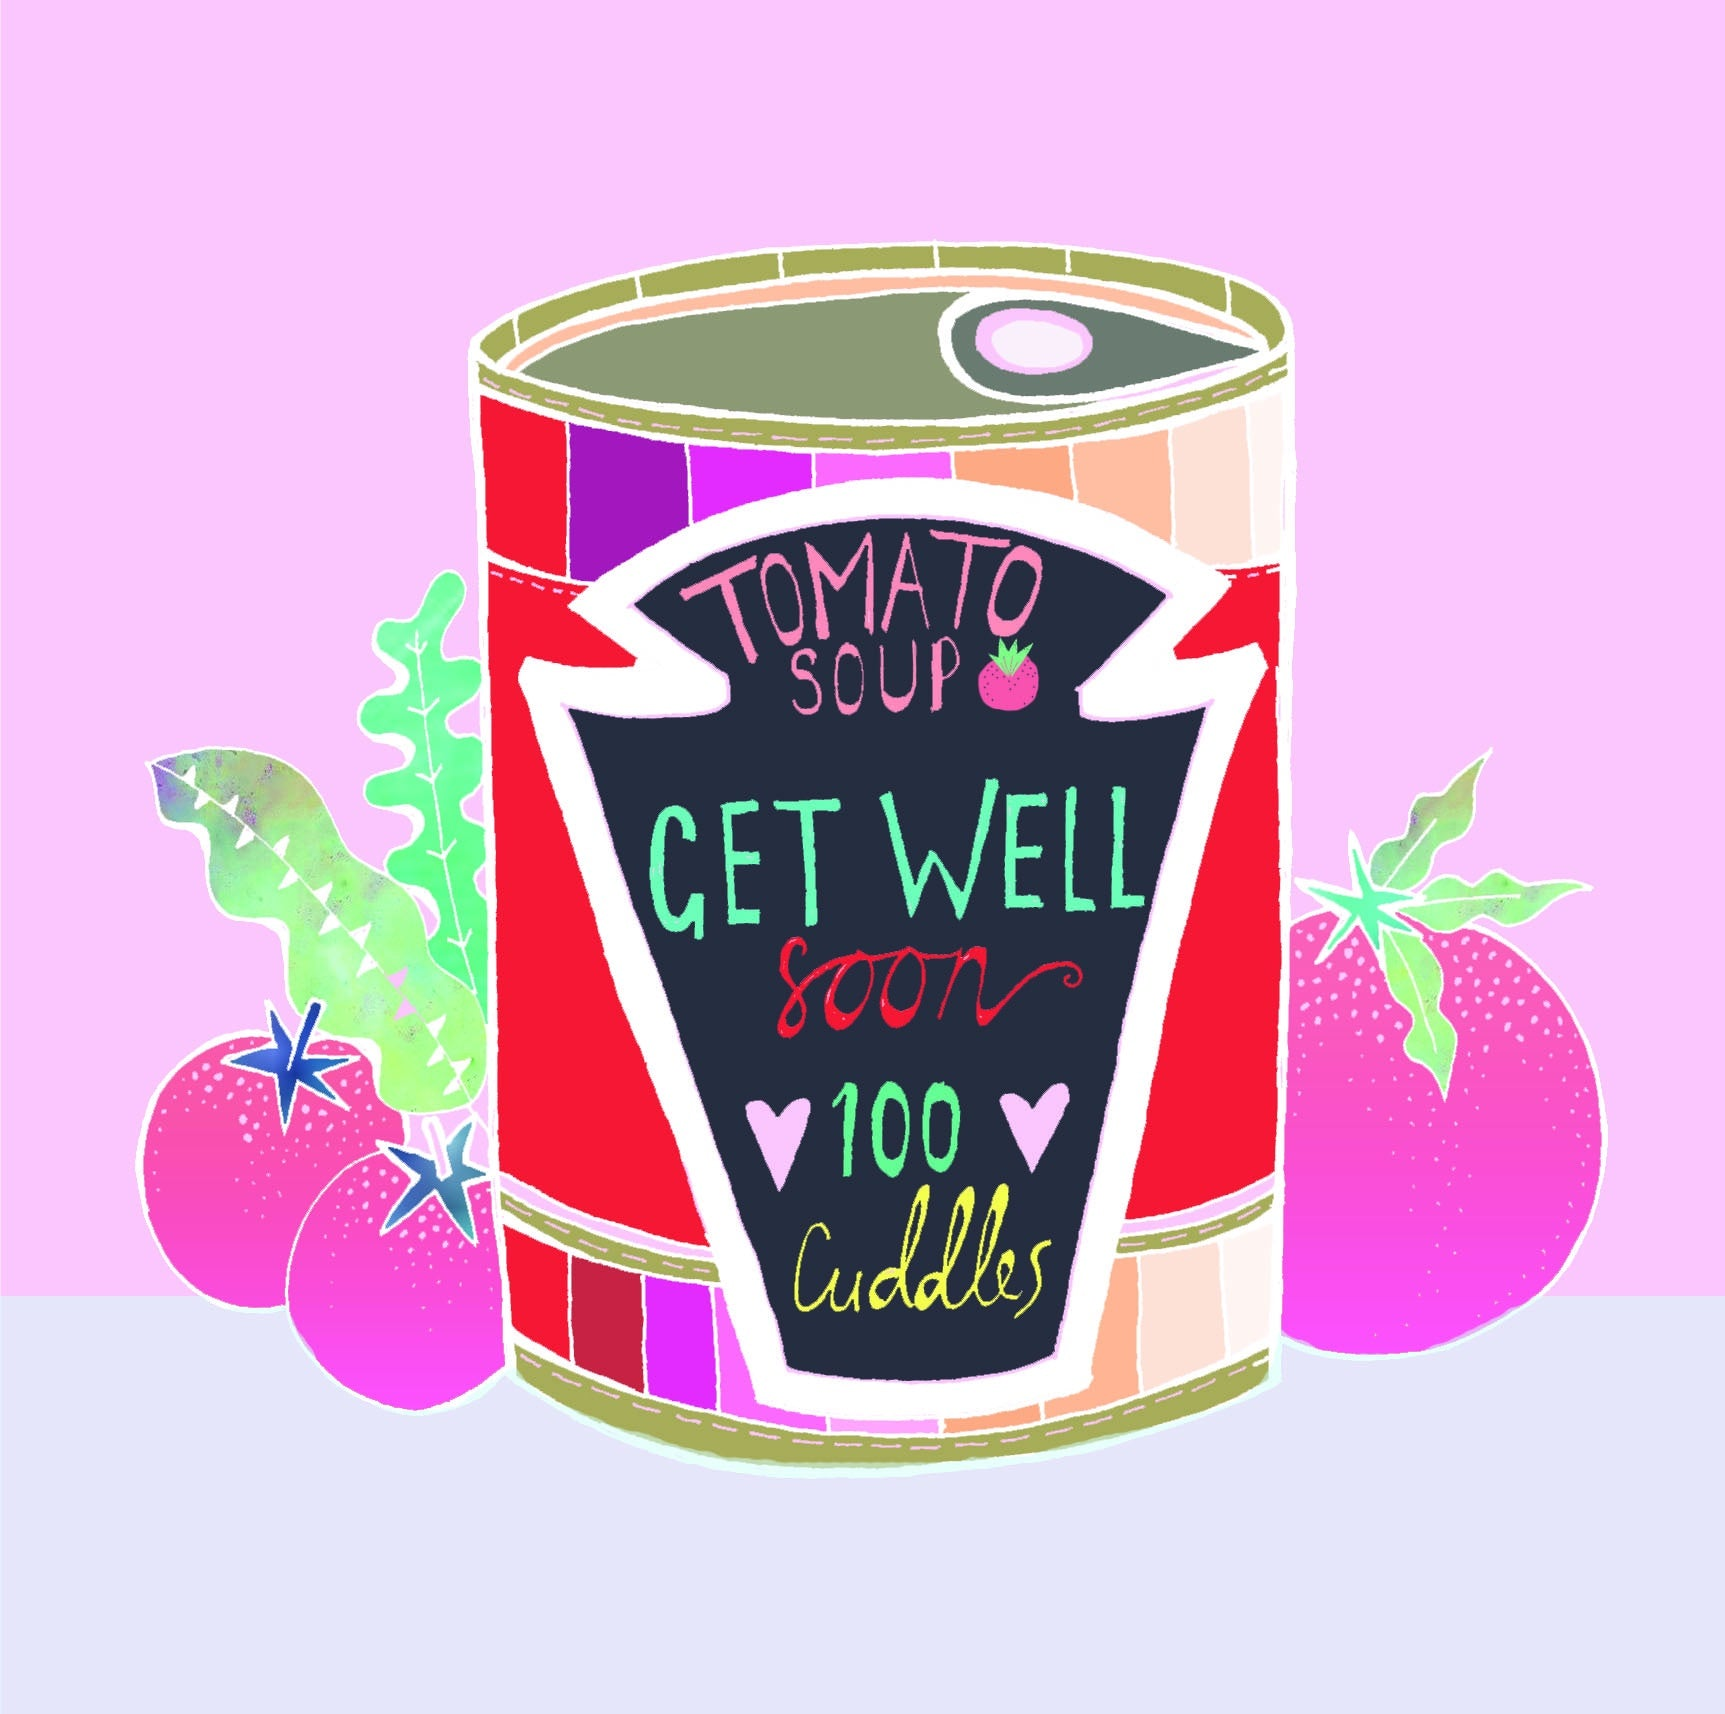 Get Well Soon - 100 Cuddles Card